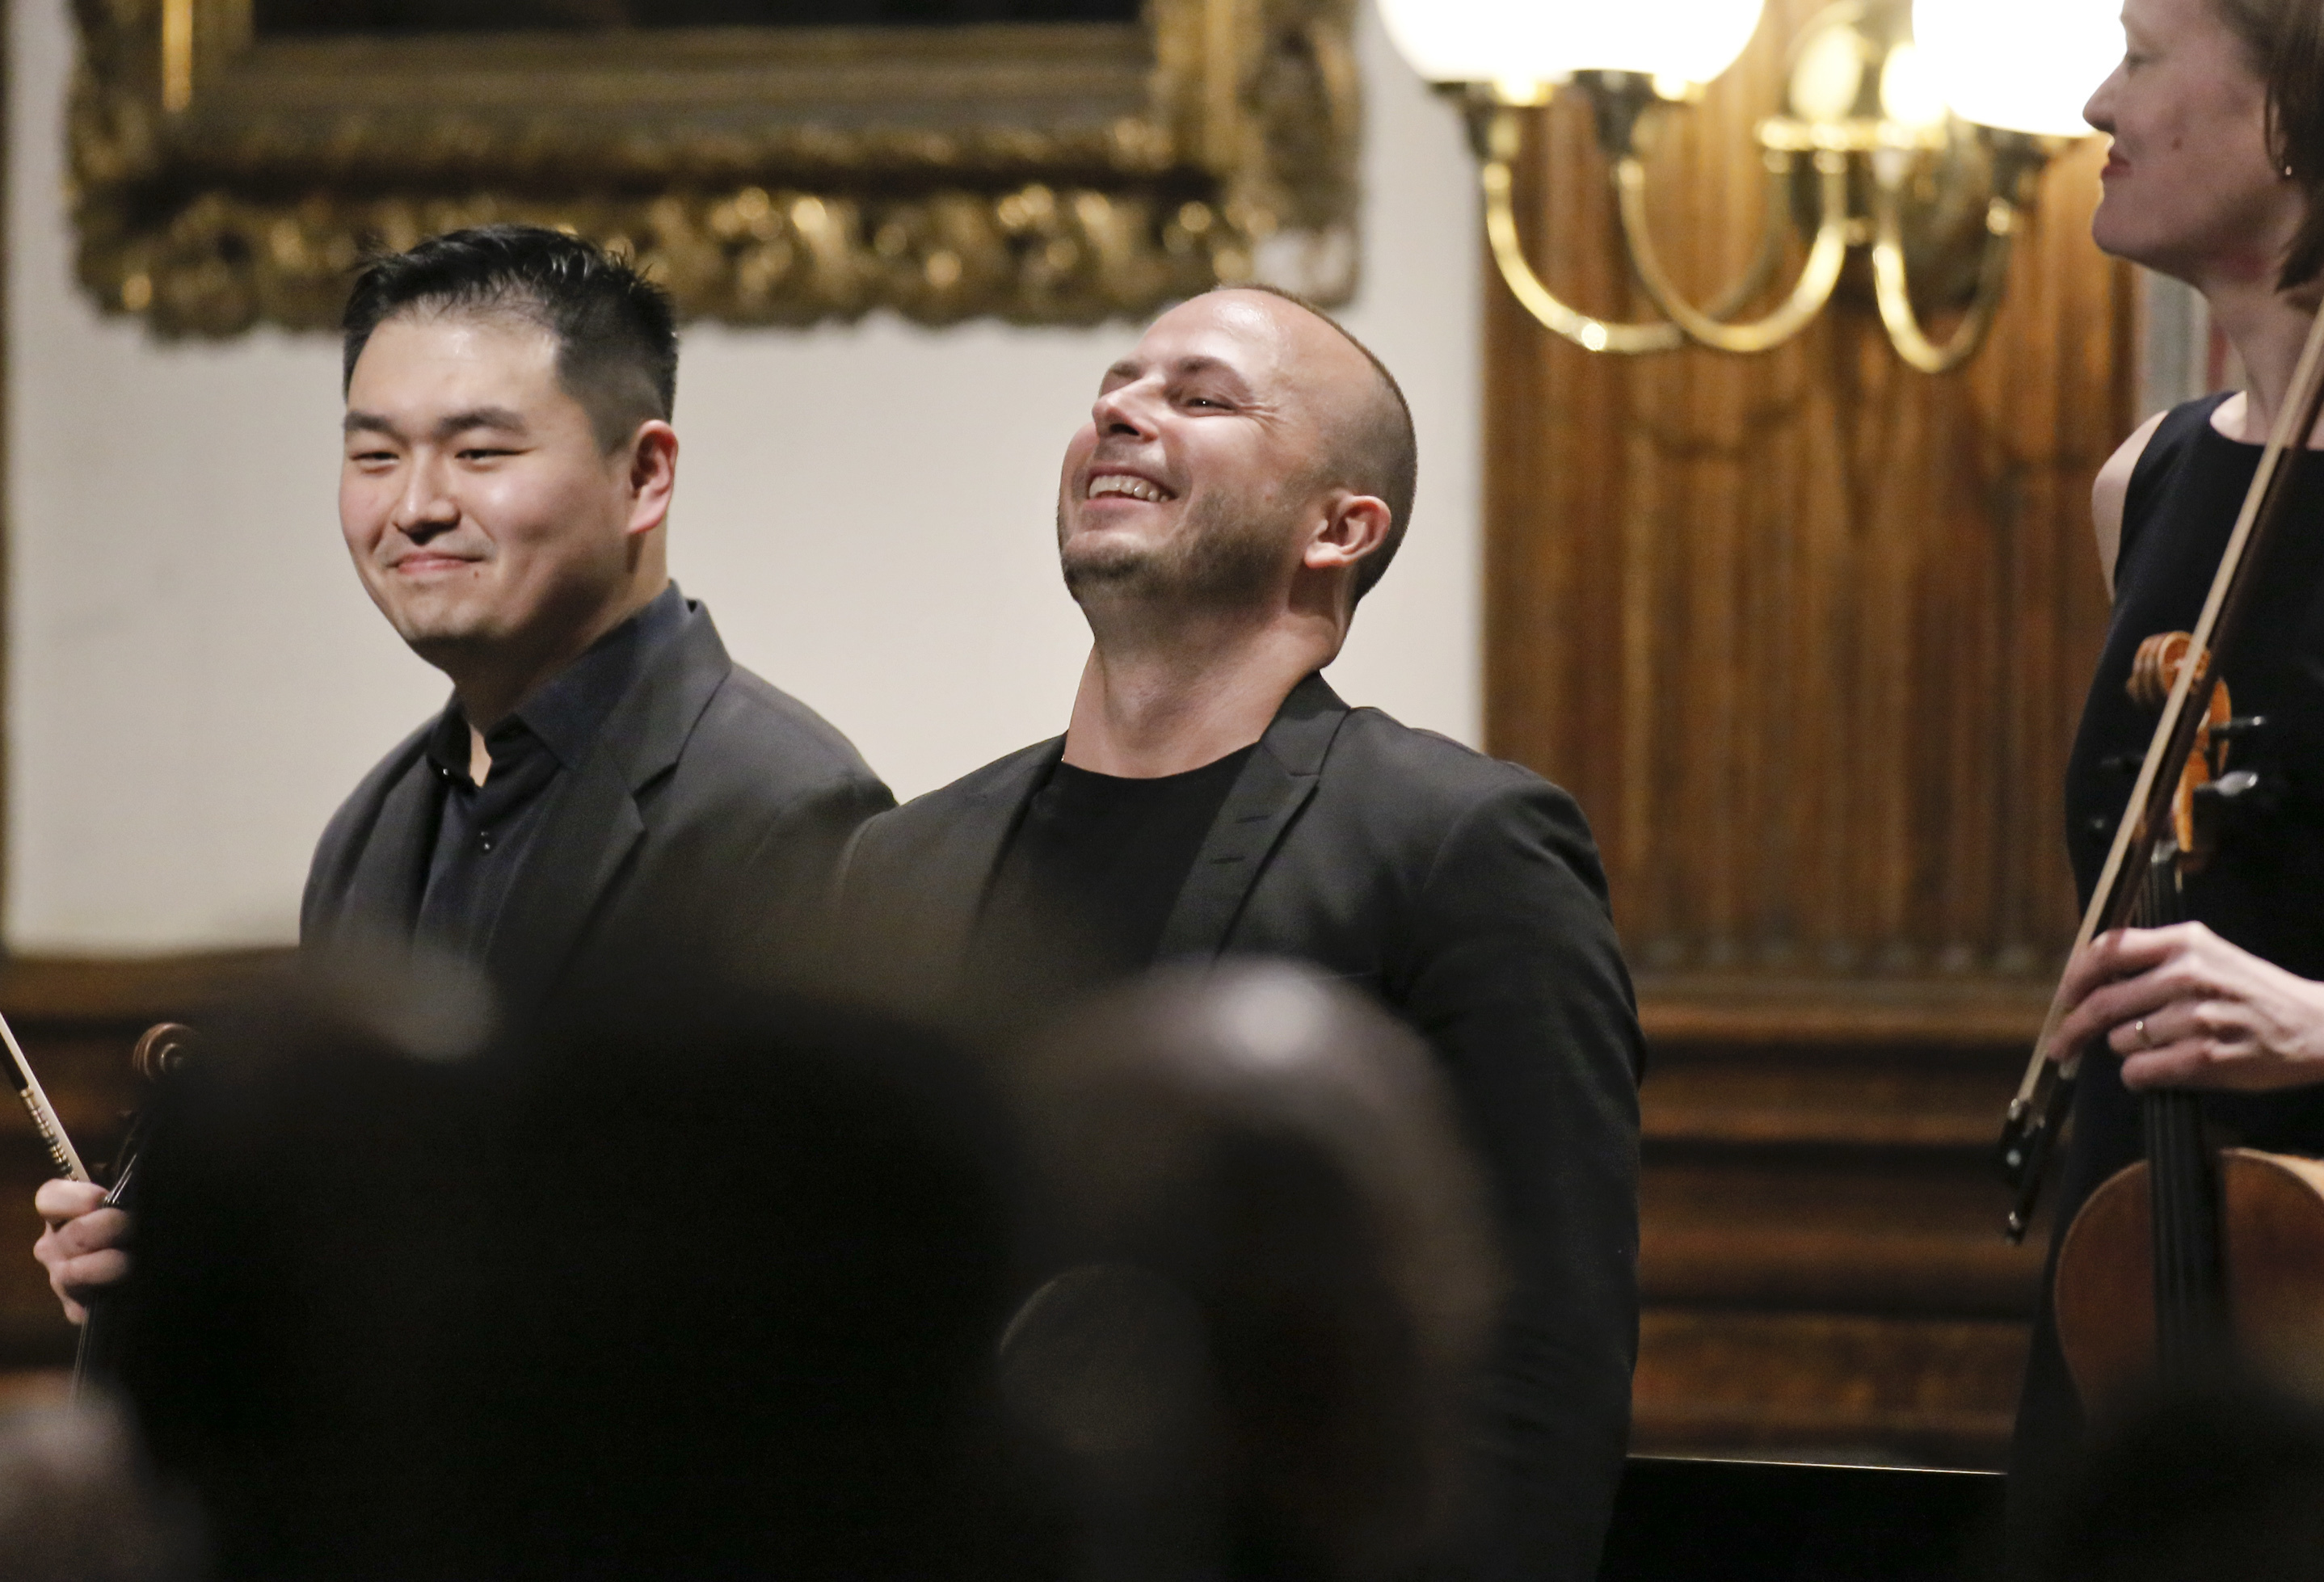 Yannick Nezet-Seguin (center) after plaiyng the piano with musicians from the Philadelphia Orchestra at a Chamber Concert in historic Mitchell Hall at The College of Physicians in Phila., Pa. on April 11, 2018. ELIZABETH ROBERTSON / Staff Photographer